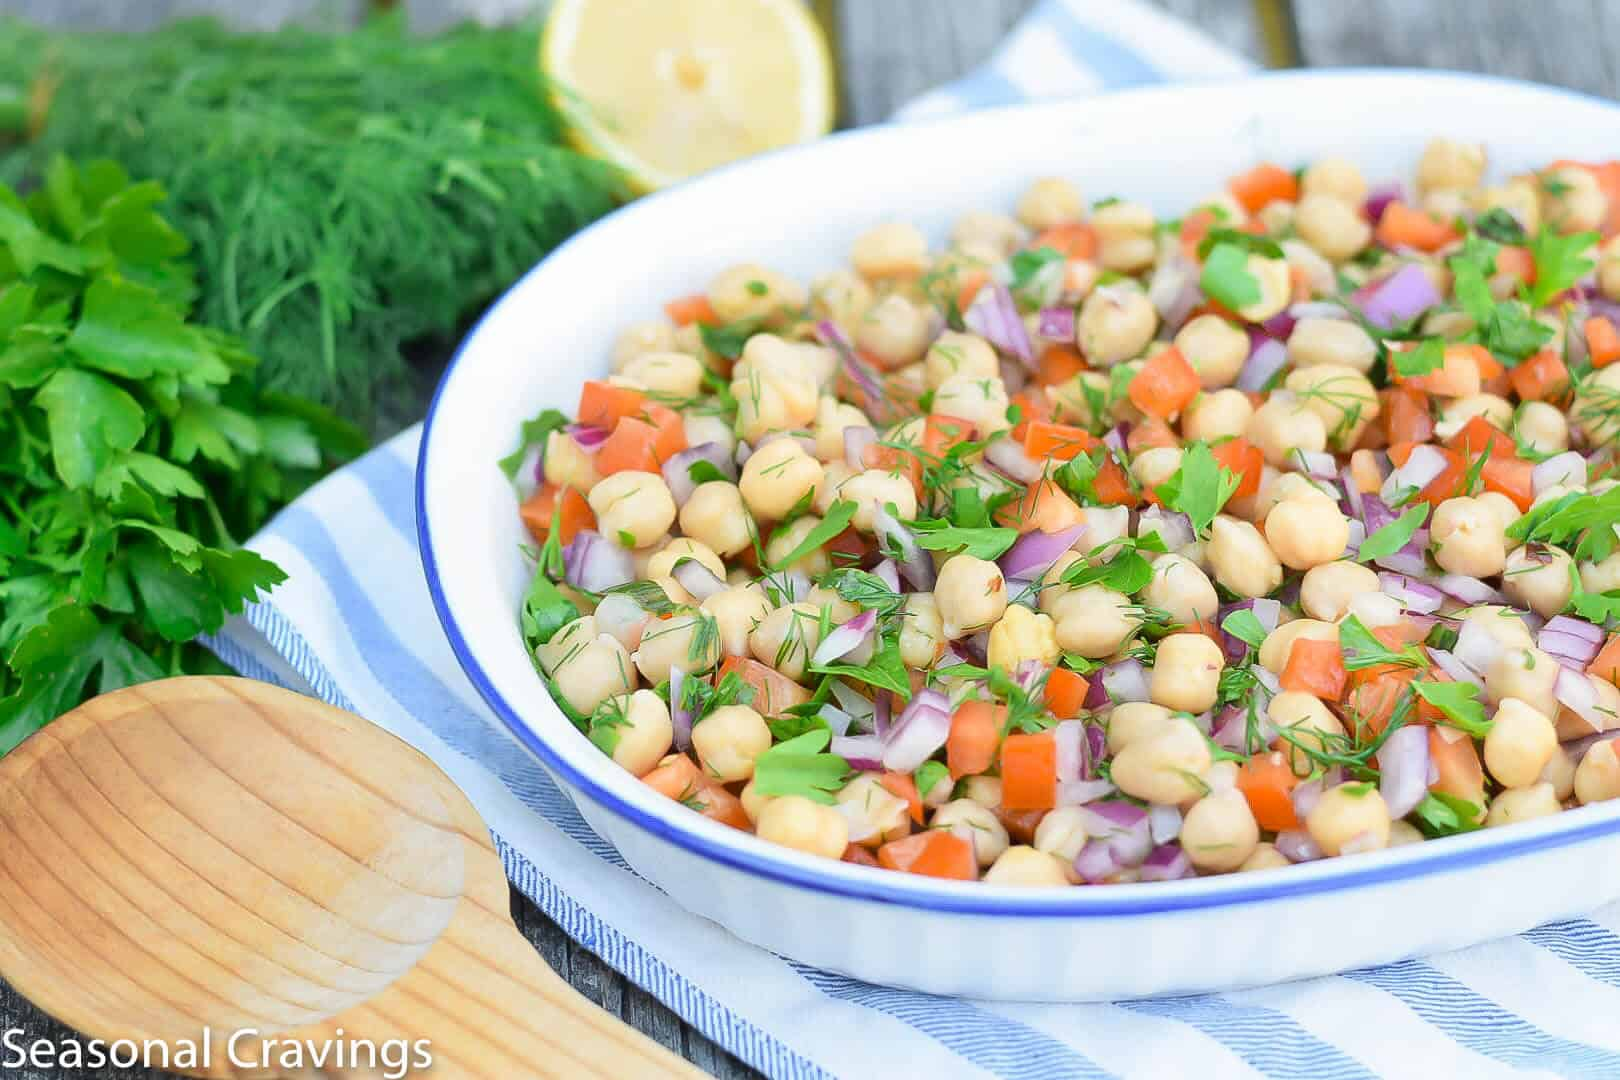 Summer Chickpea Salad with a wooden spoon in a white bowl